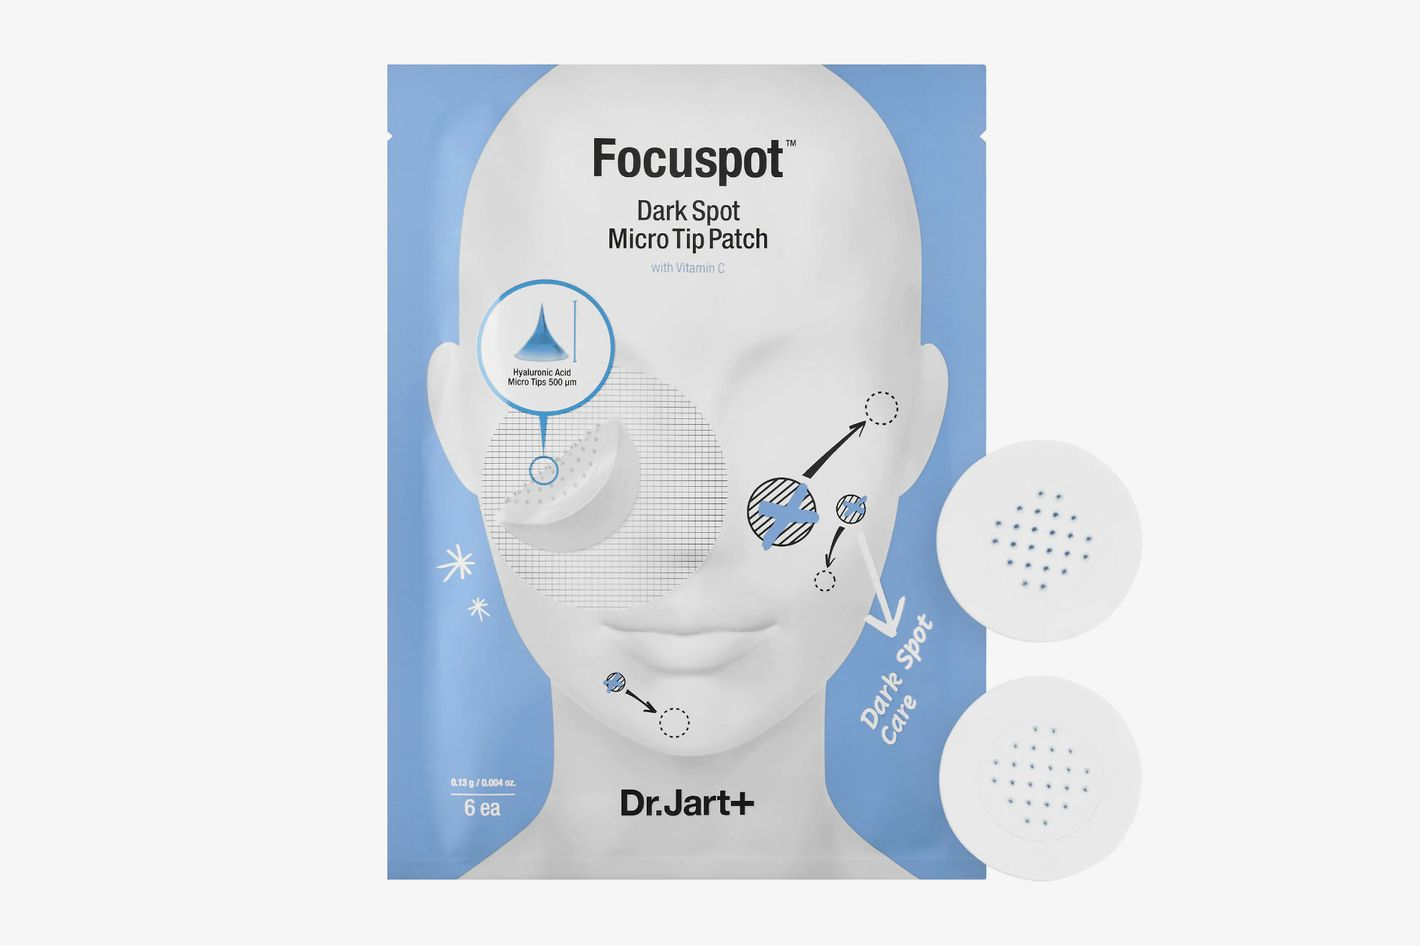 Dr. Jart Focuspot™ Dark Spot Micro Tip Patch